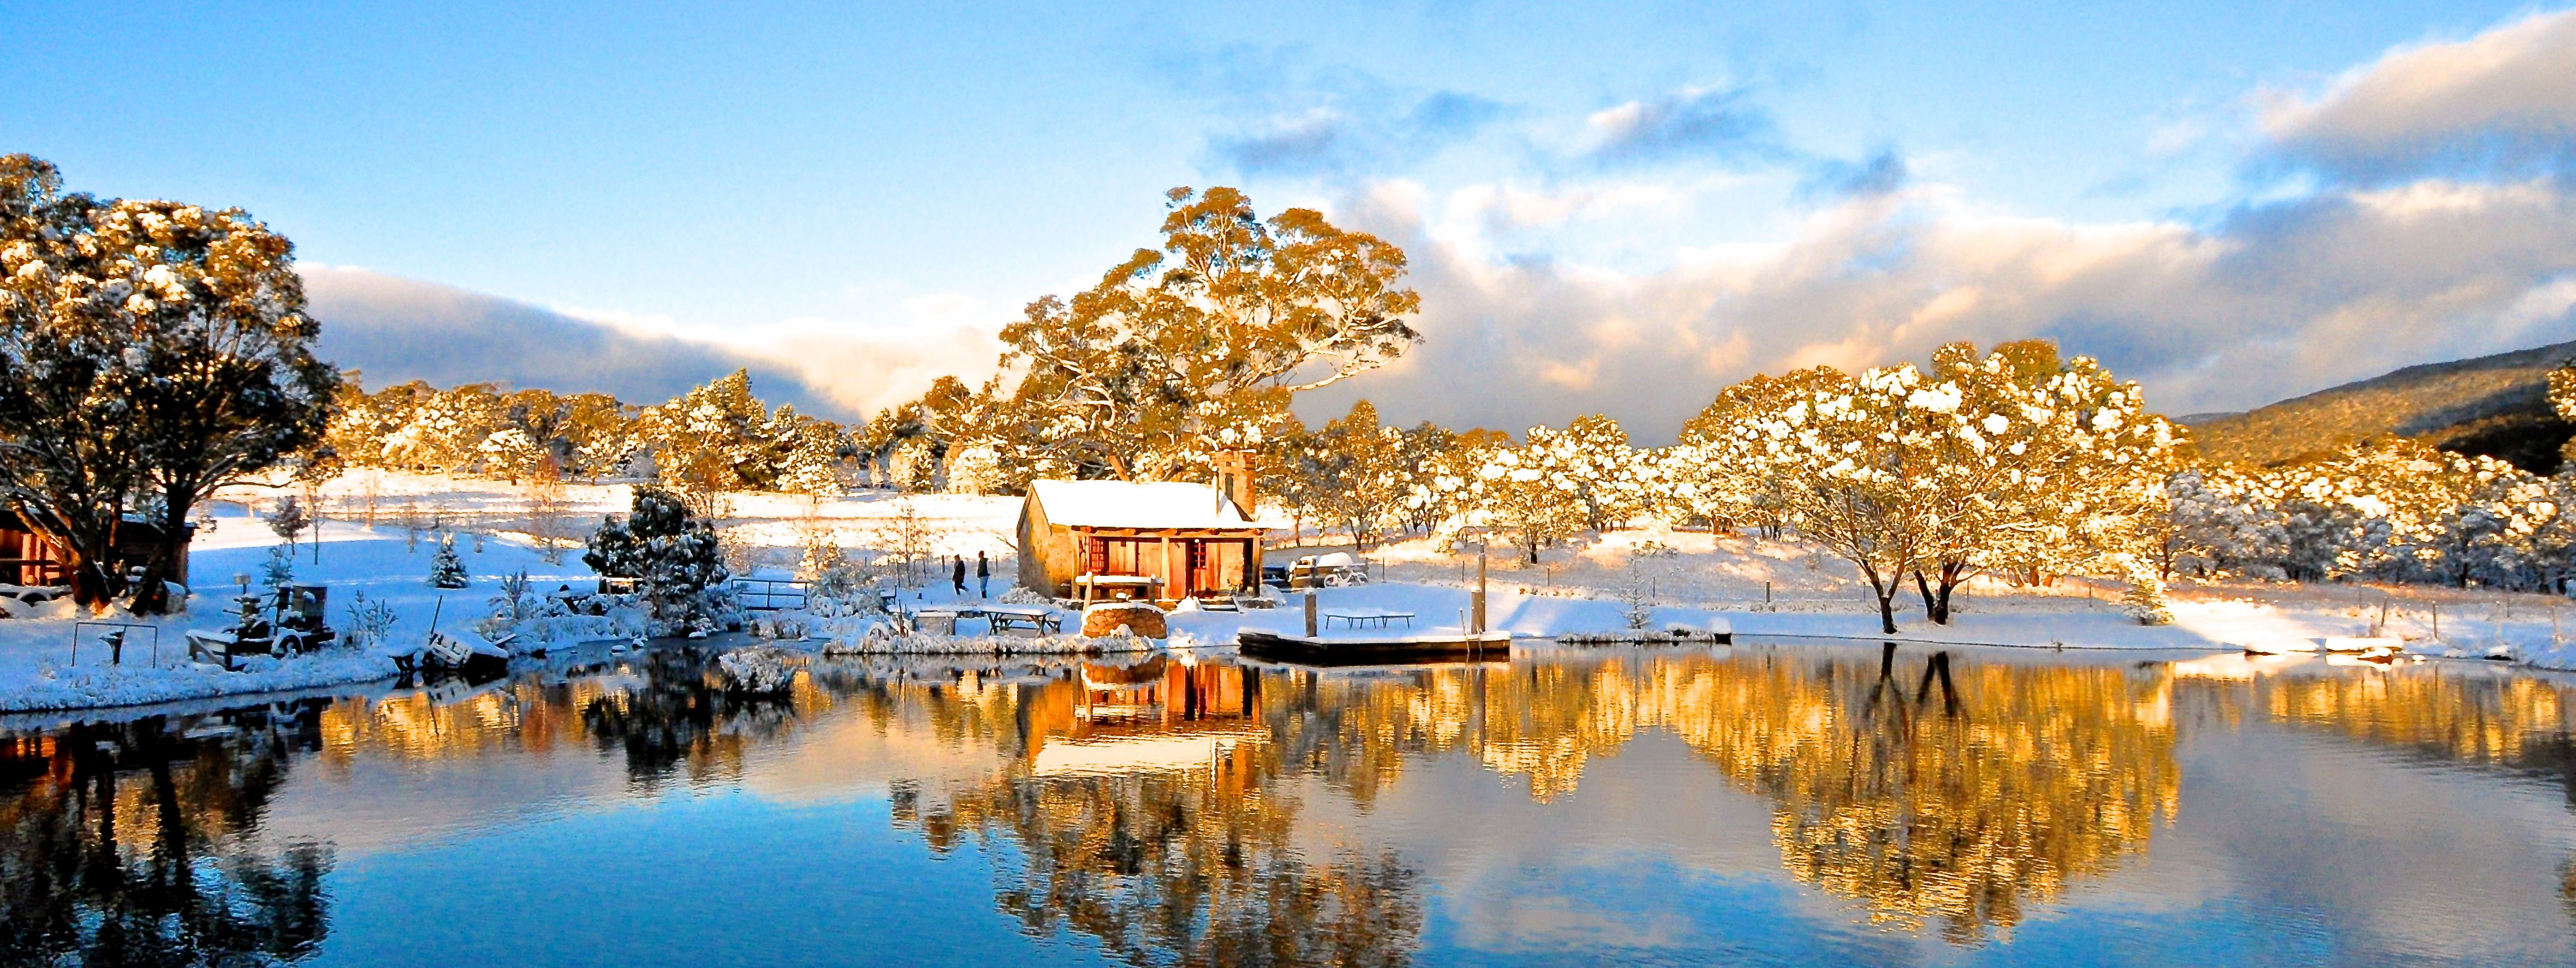 Winter at Moonbah Lake Hut